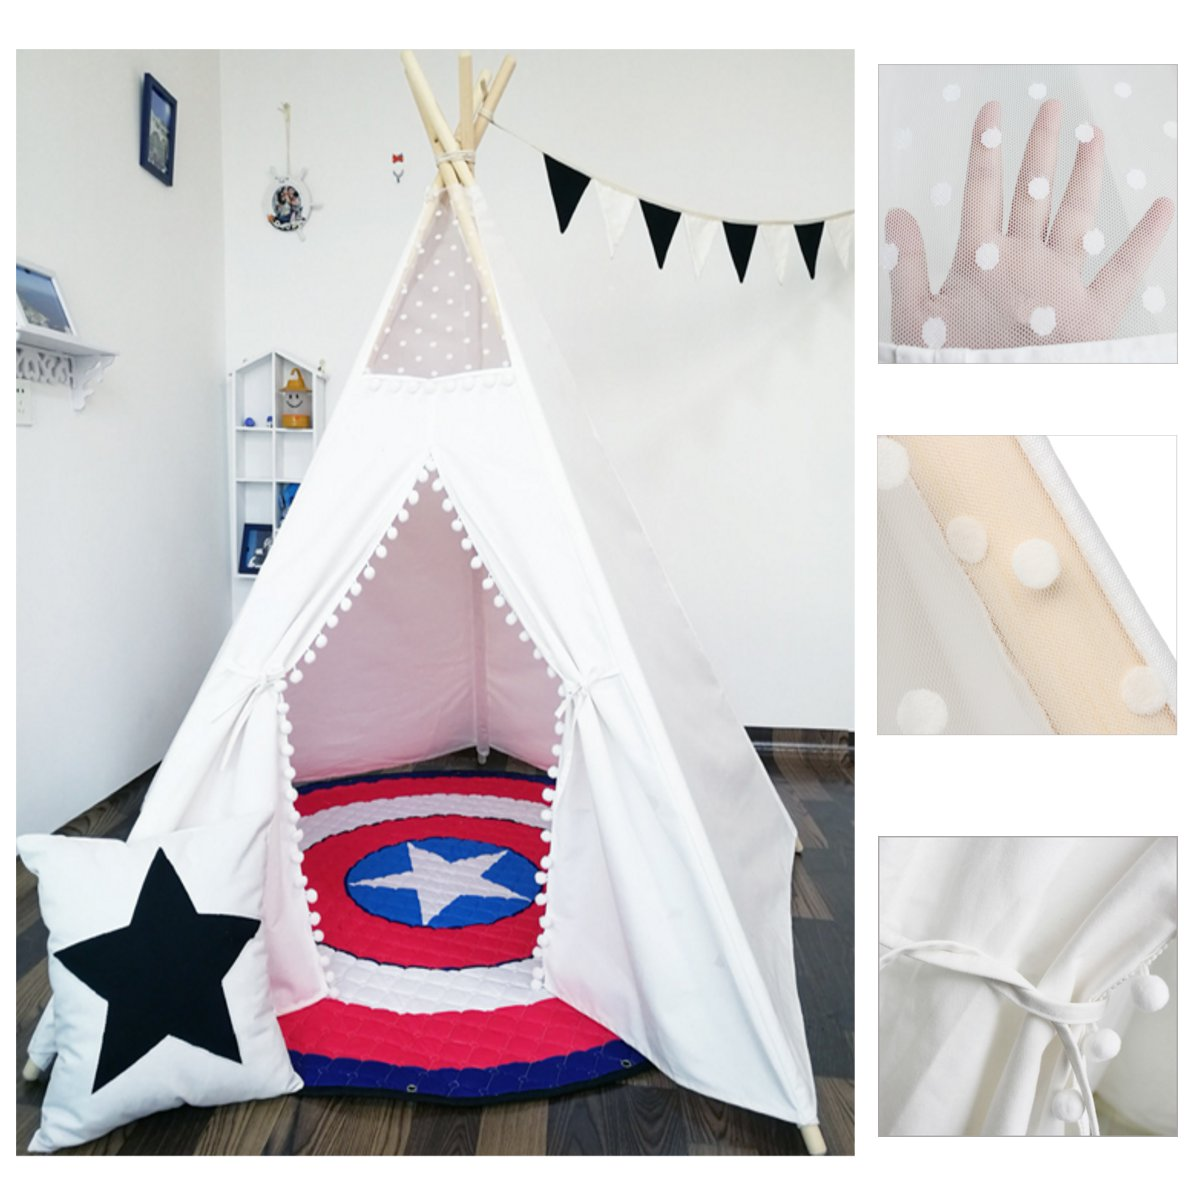 Large Cotton Canvas Original Teepee Kids Teepee With White Indian Play Tent House Children Outdoor Indoor Tipi Tee Pee TentLarge Cotton Canvas Original Teepee Kids Teepee With White Indian Play Tent House Children Outdoor Indoor Tipi Tee Pee Tent